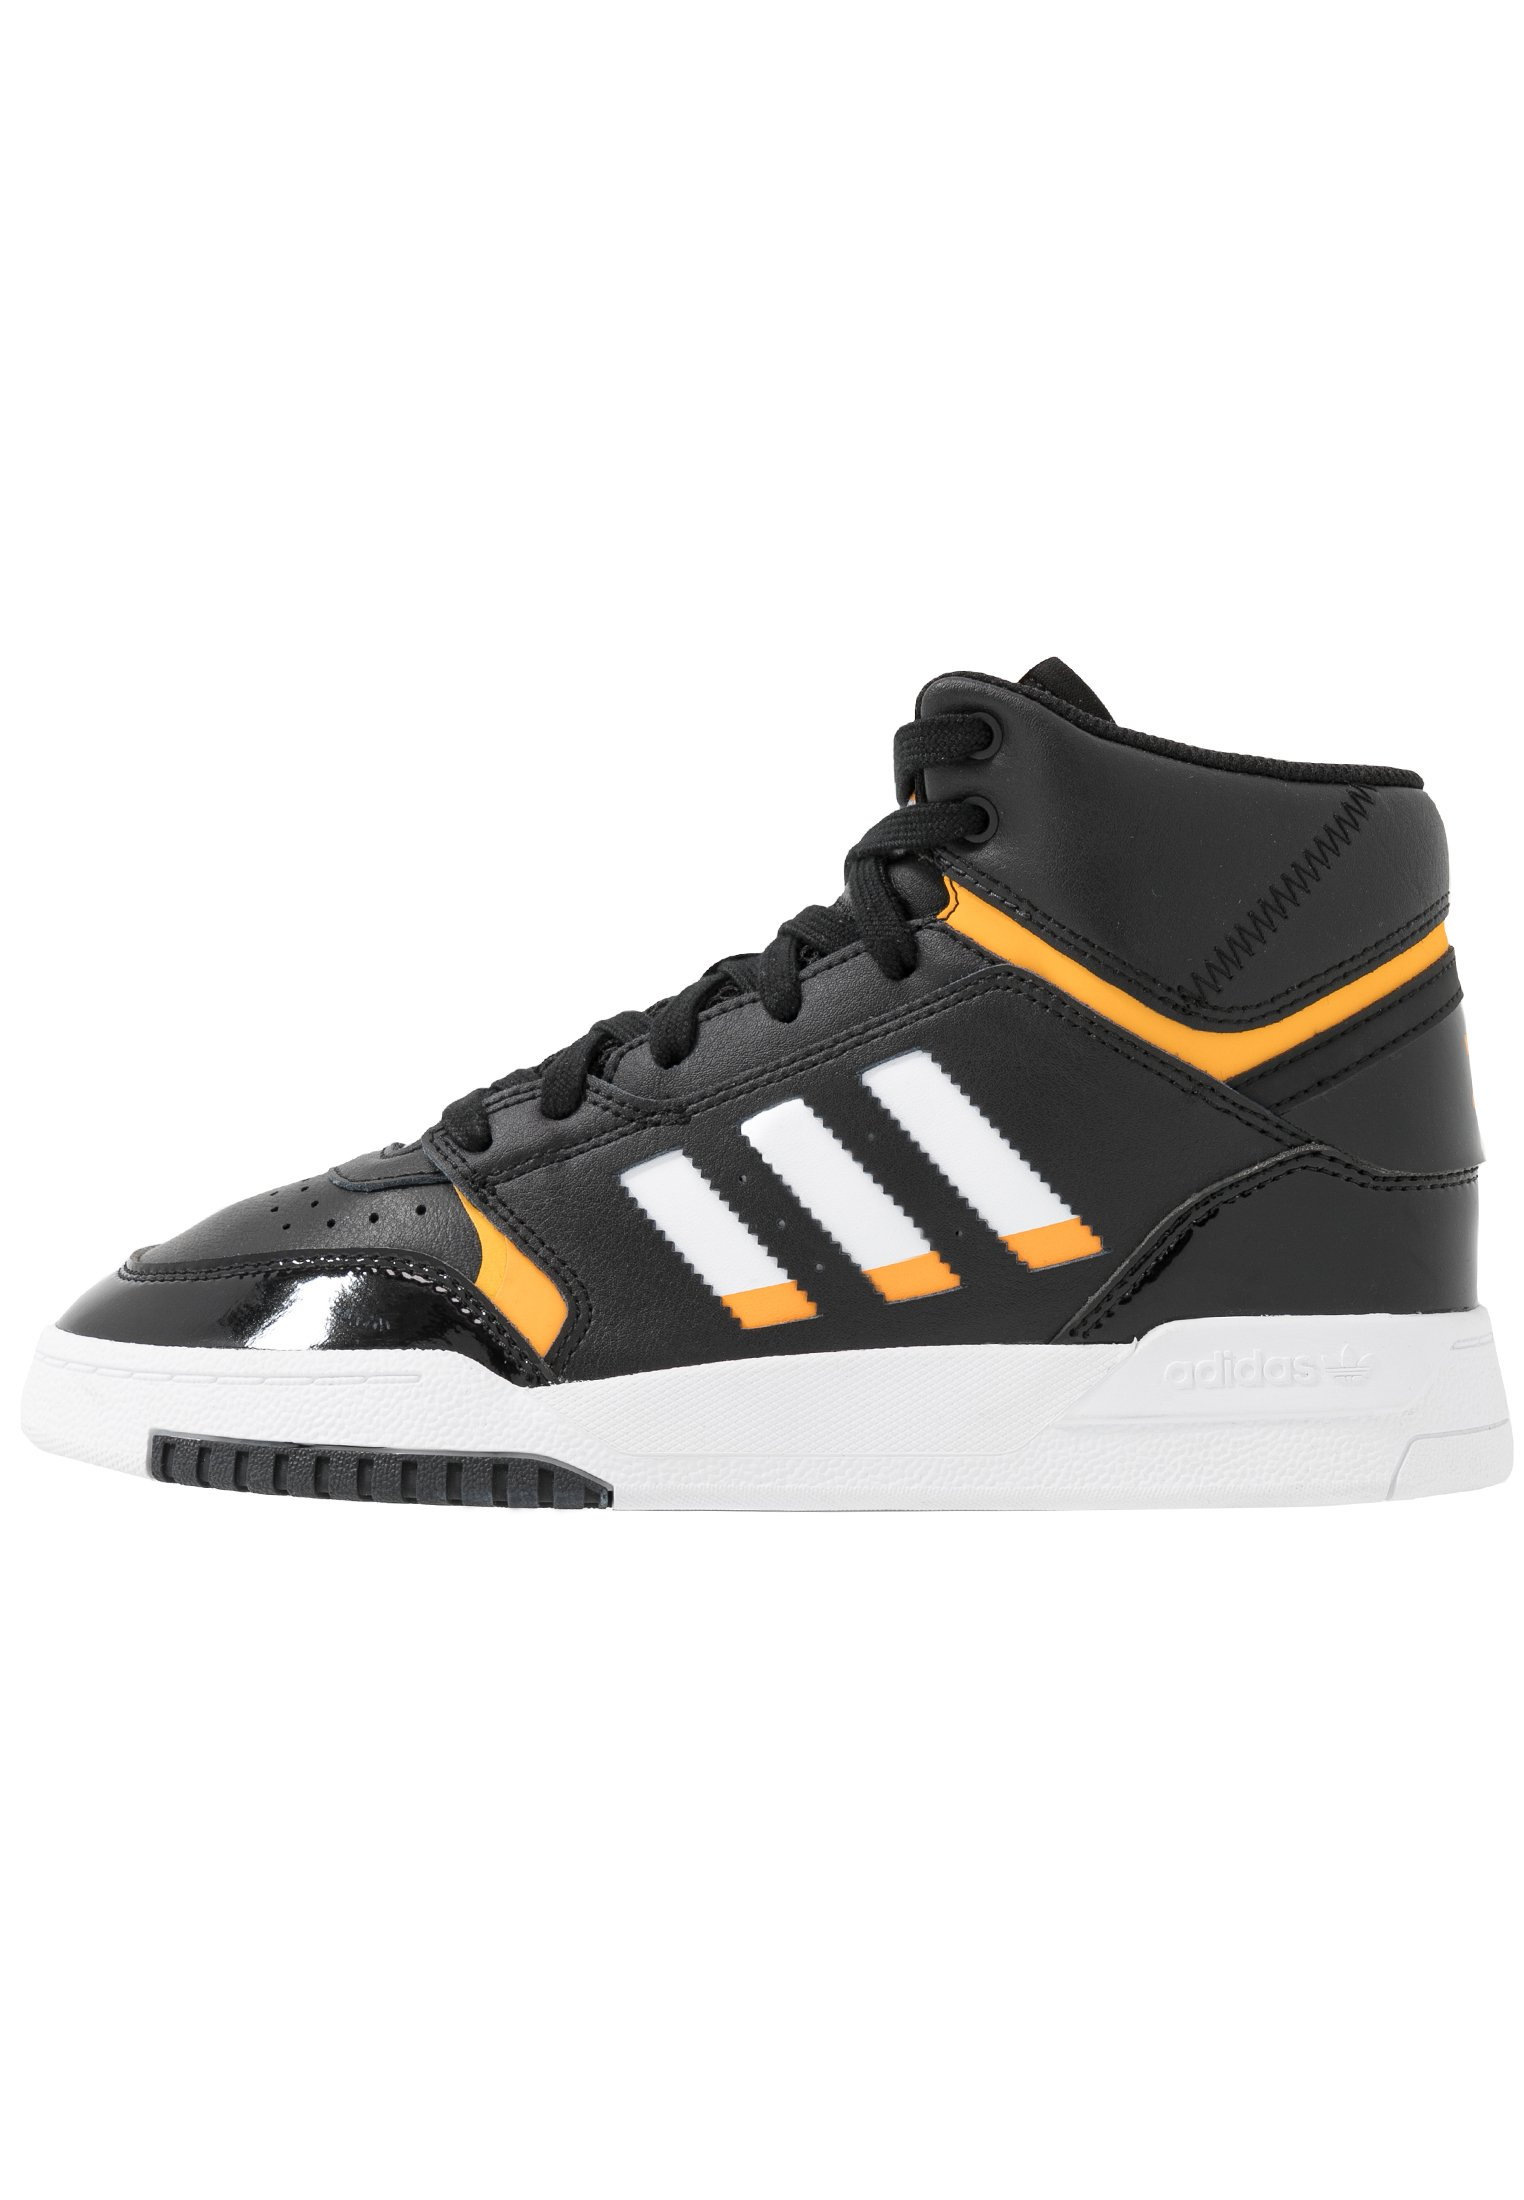 DROP STEP BASKETBALL STYLE SHOES Sneaker high core blackfootwear whitegold